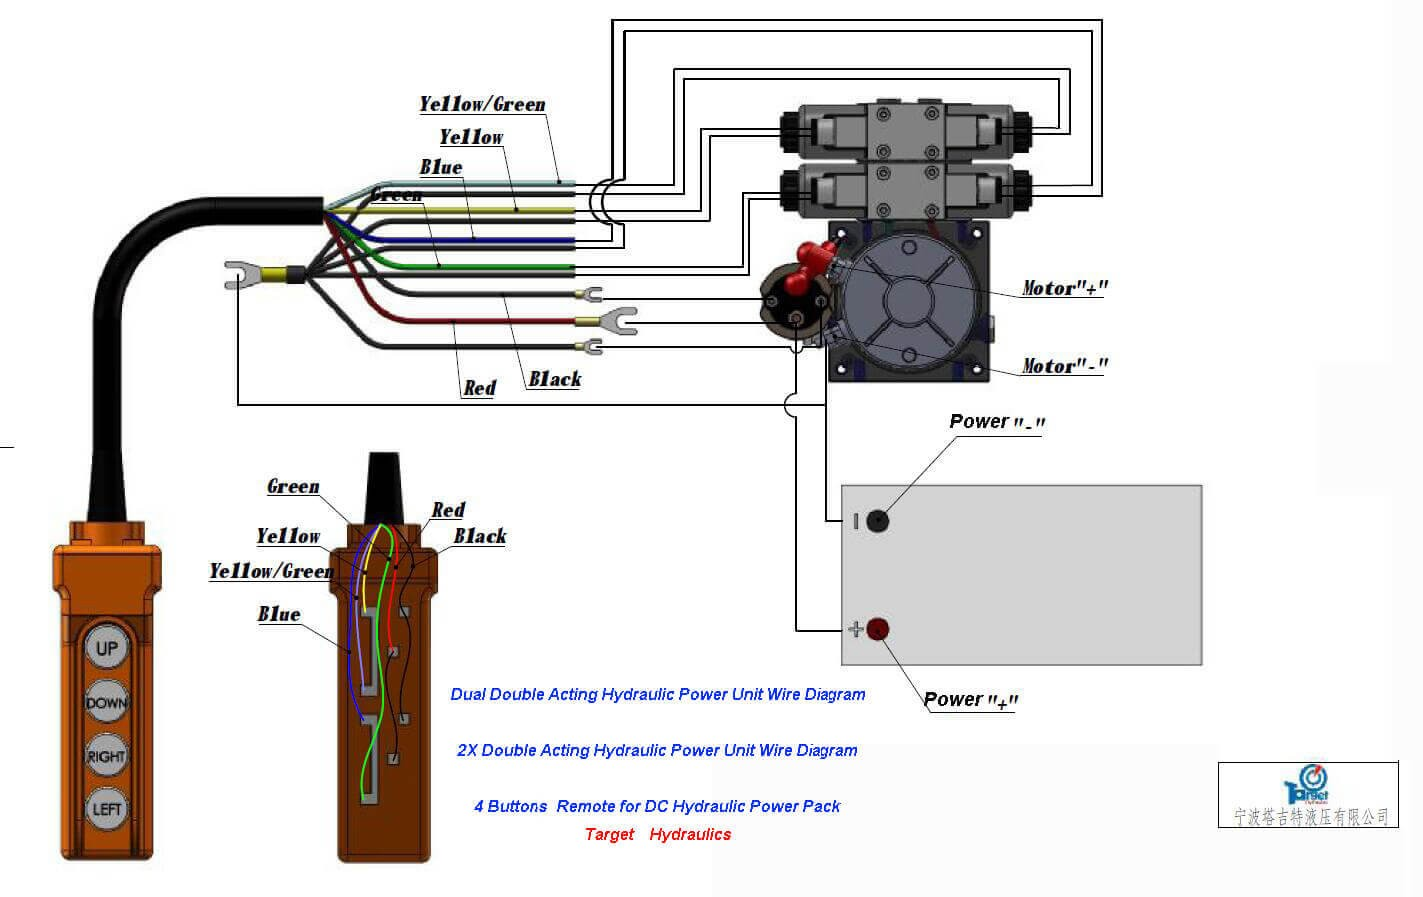 dual double acting hydraulic cylinder Power Units Wiring Diagram drawing